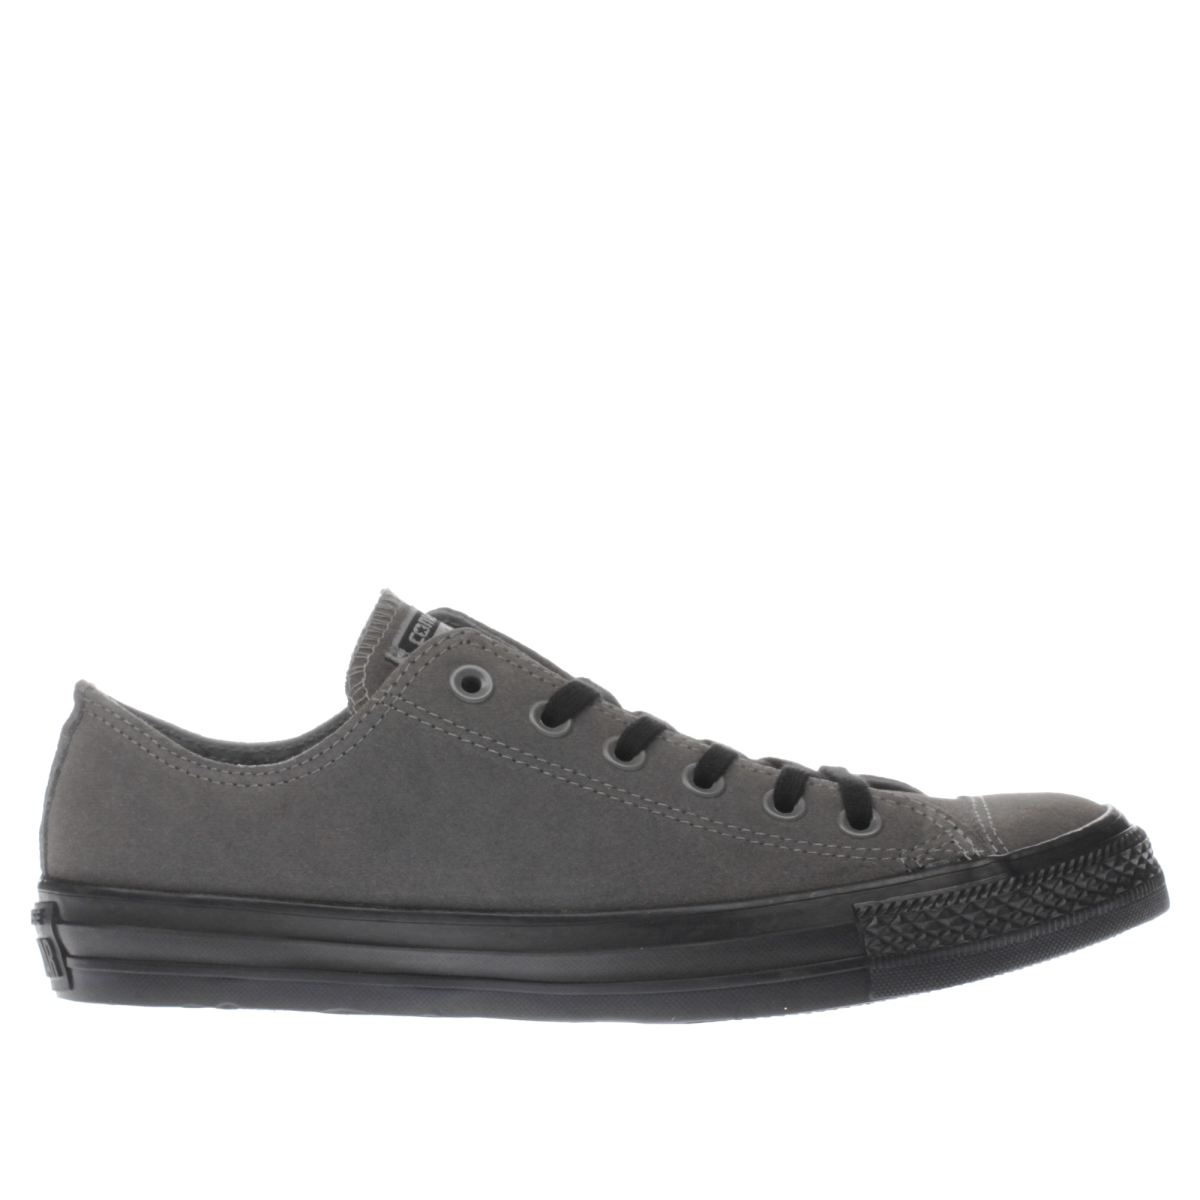 converse grey all star lo suede trainers